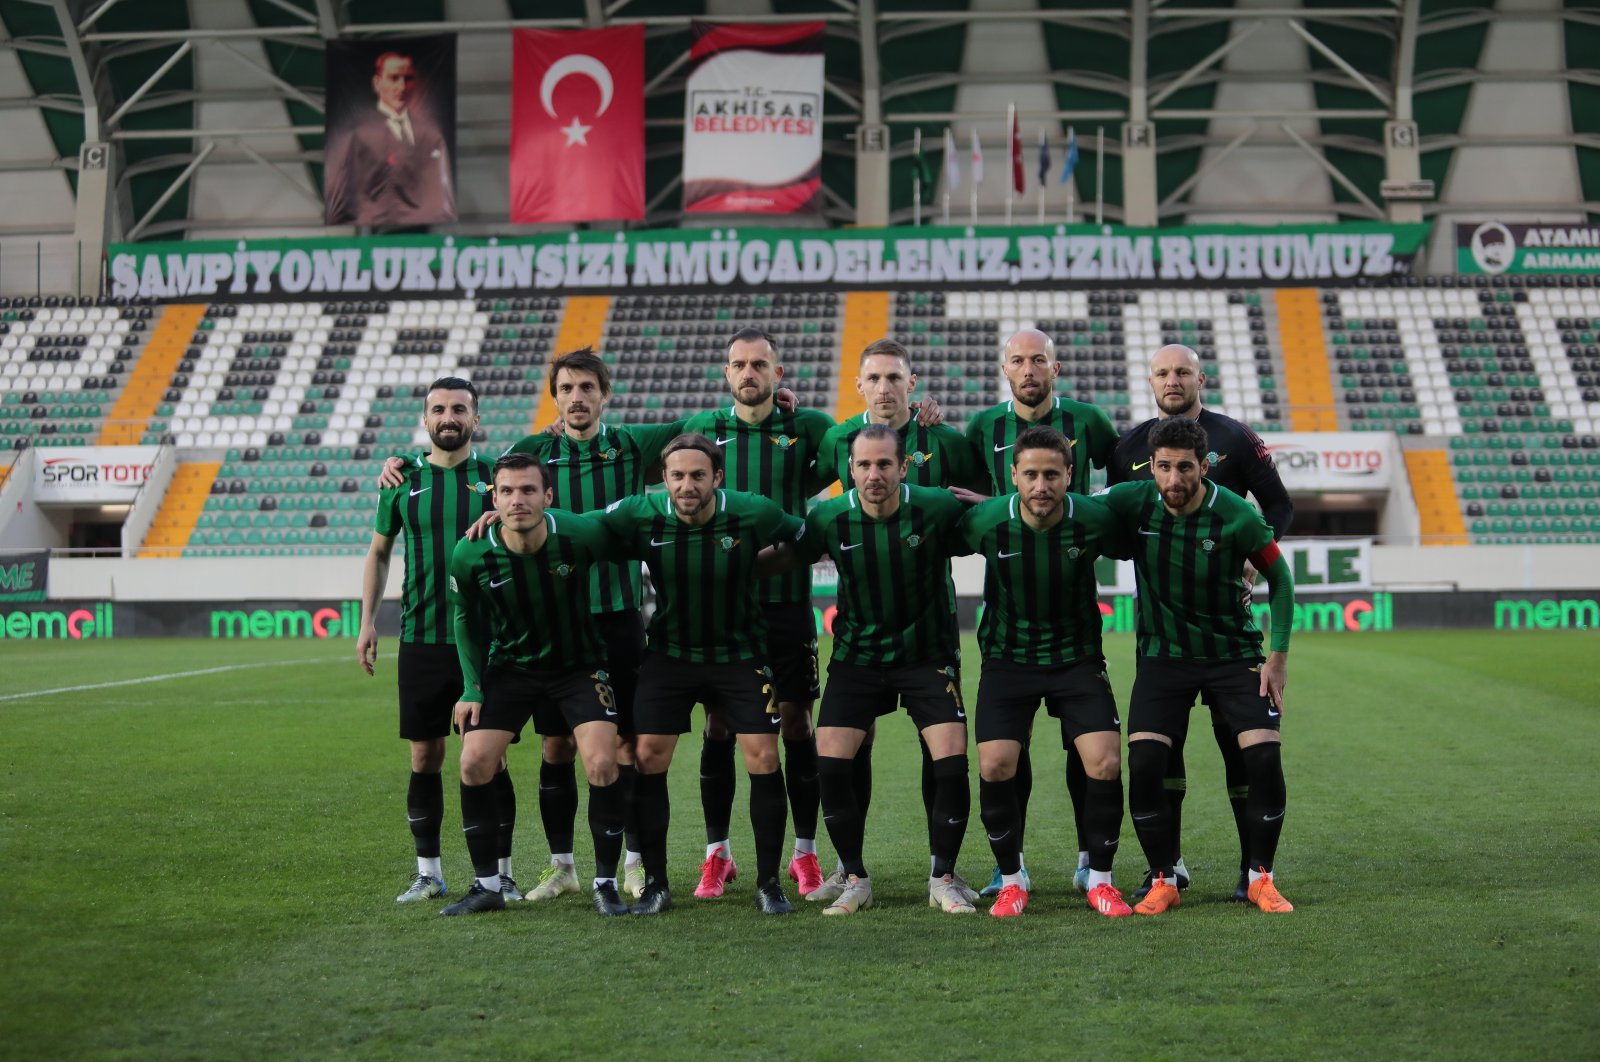 Akhisarspor competes in the second-tier football league of Turkey. (İHA Photo)